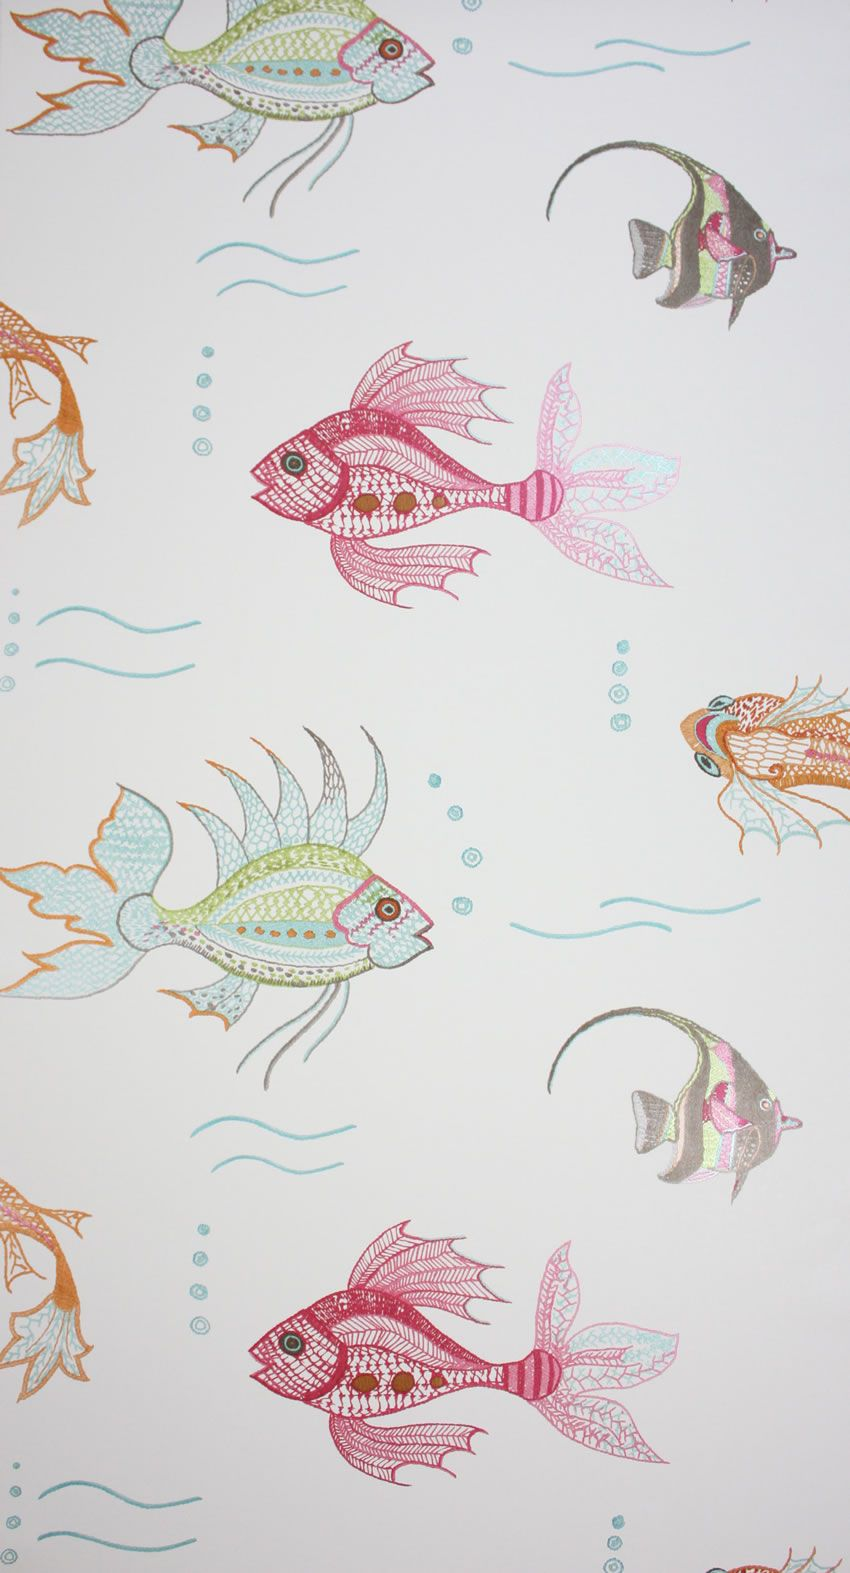 Sample Aquarium Wallpaper in Multi-Color from the Perroquet Collection by Nina Campbell